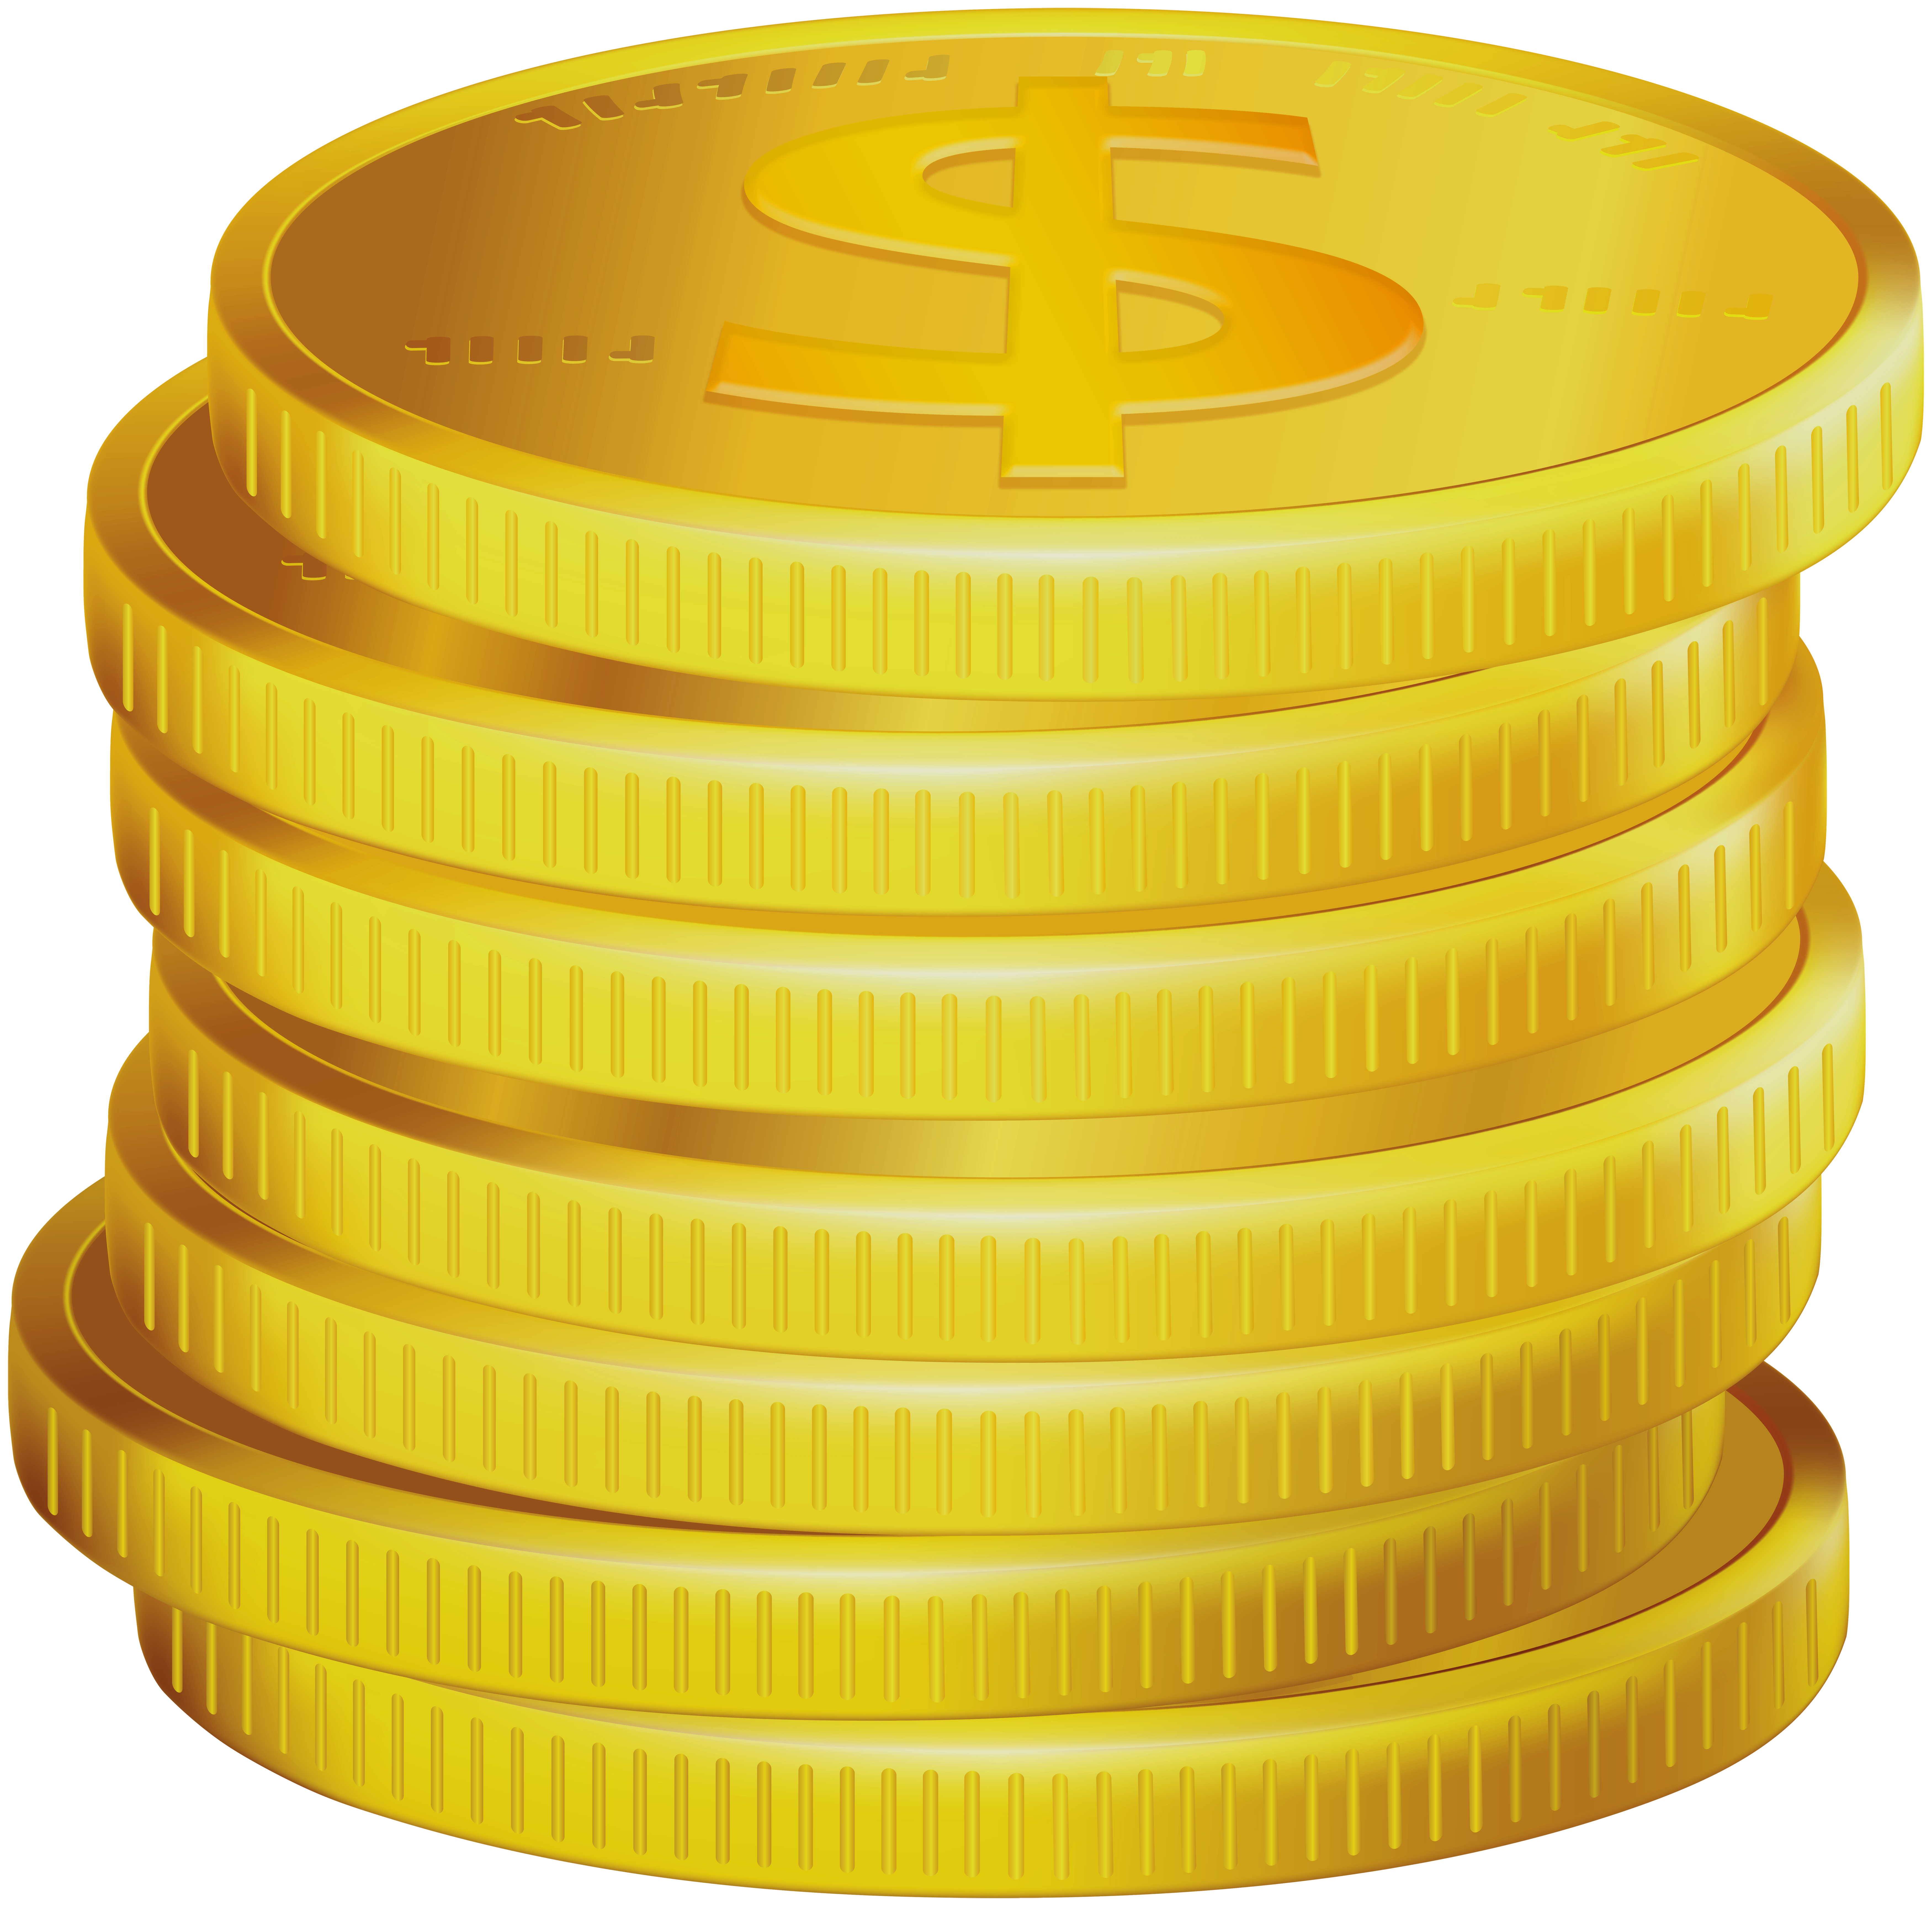 Network Vector Portable Coin Graphics Free Download Image PNG Image